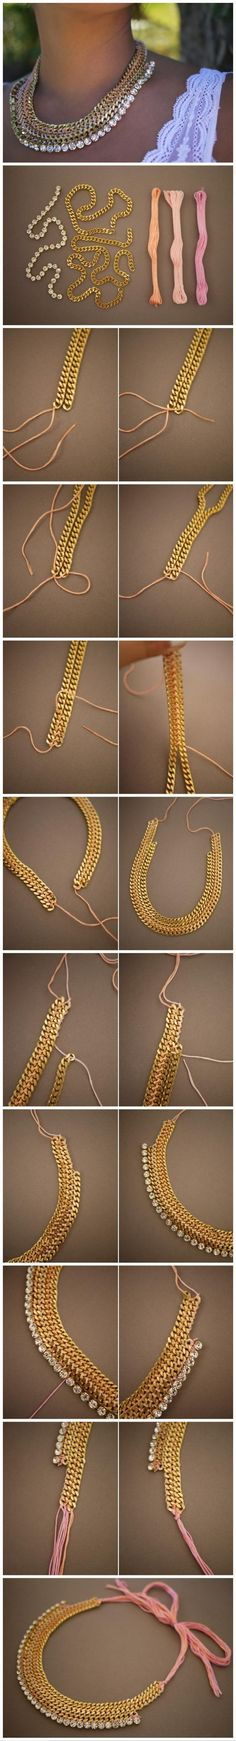 DIY necklace #tutorial